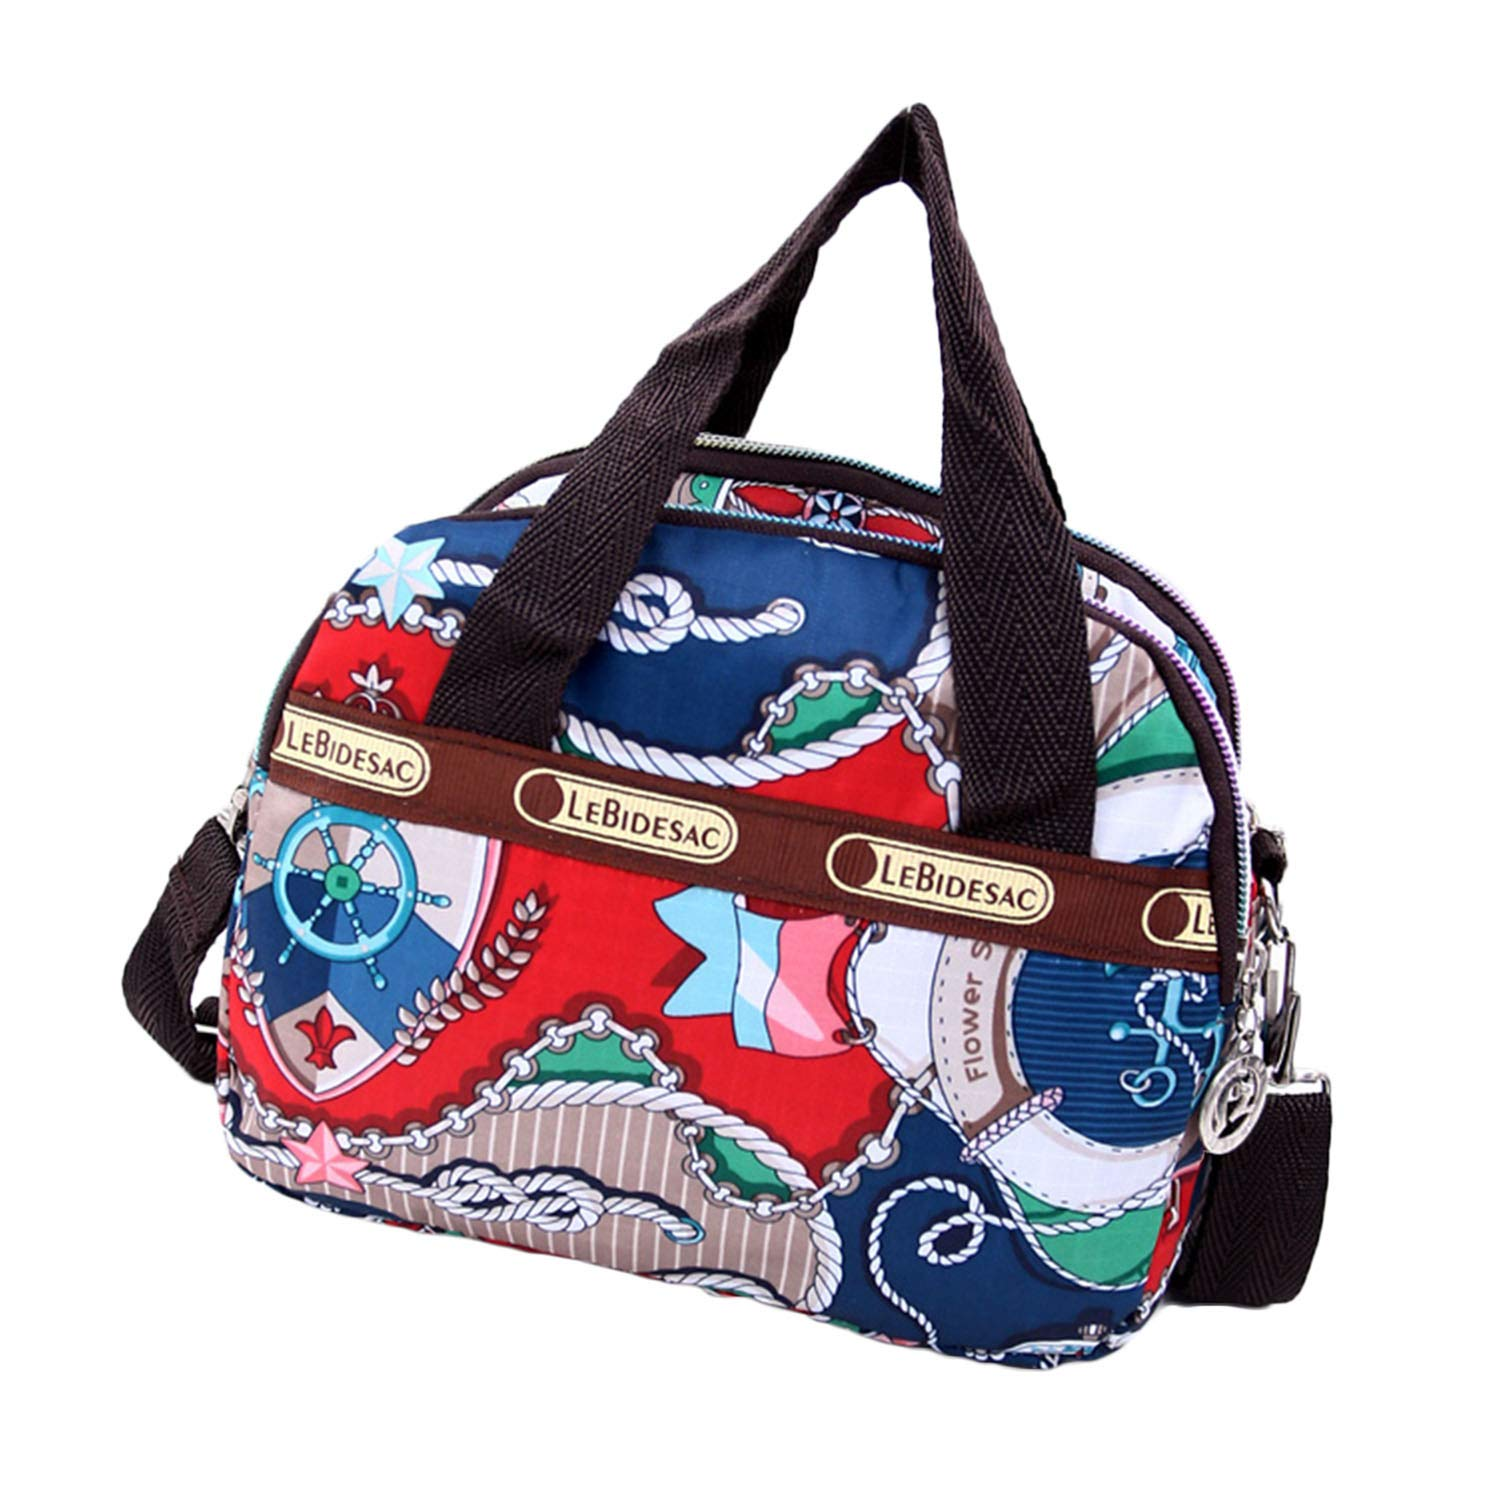 Women's Mini Nylon Floral Top Handle Tote Handbags Water Resistant Multi Pocket Zipper Shoulder Bag Crossbody Bags (Style_10)